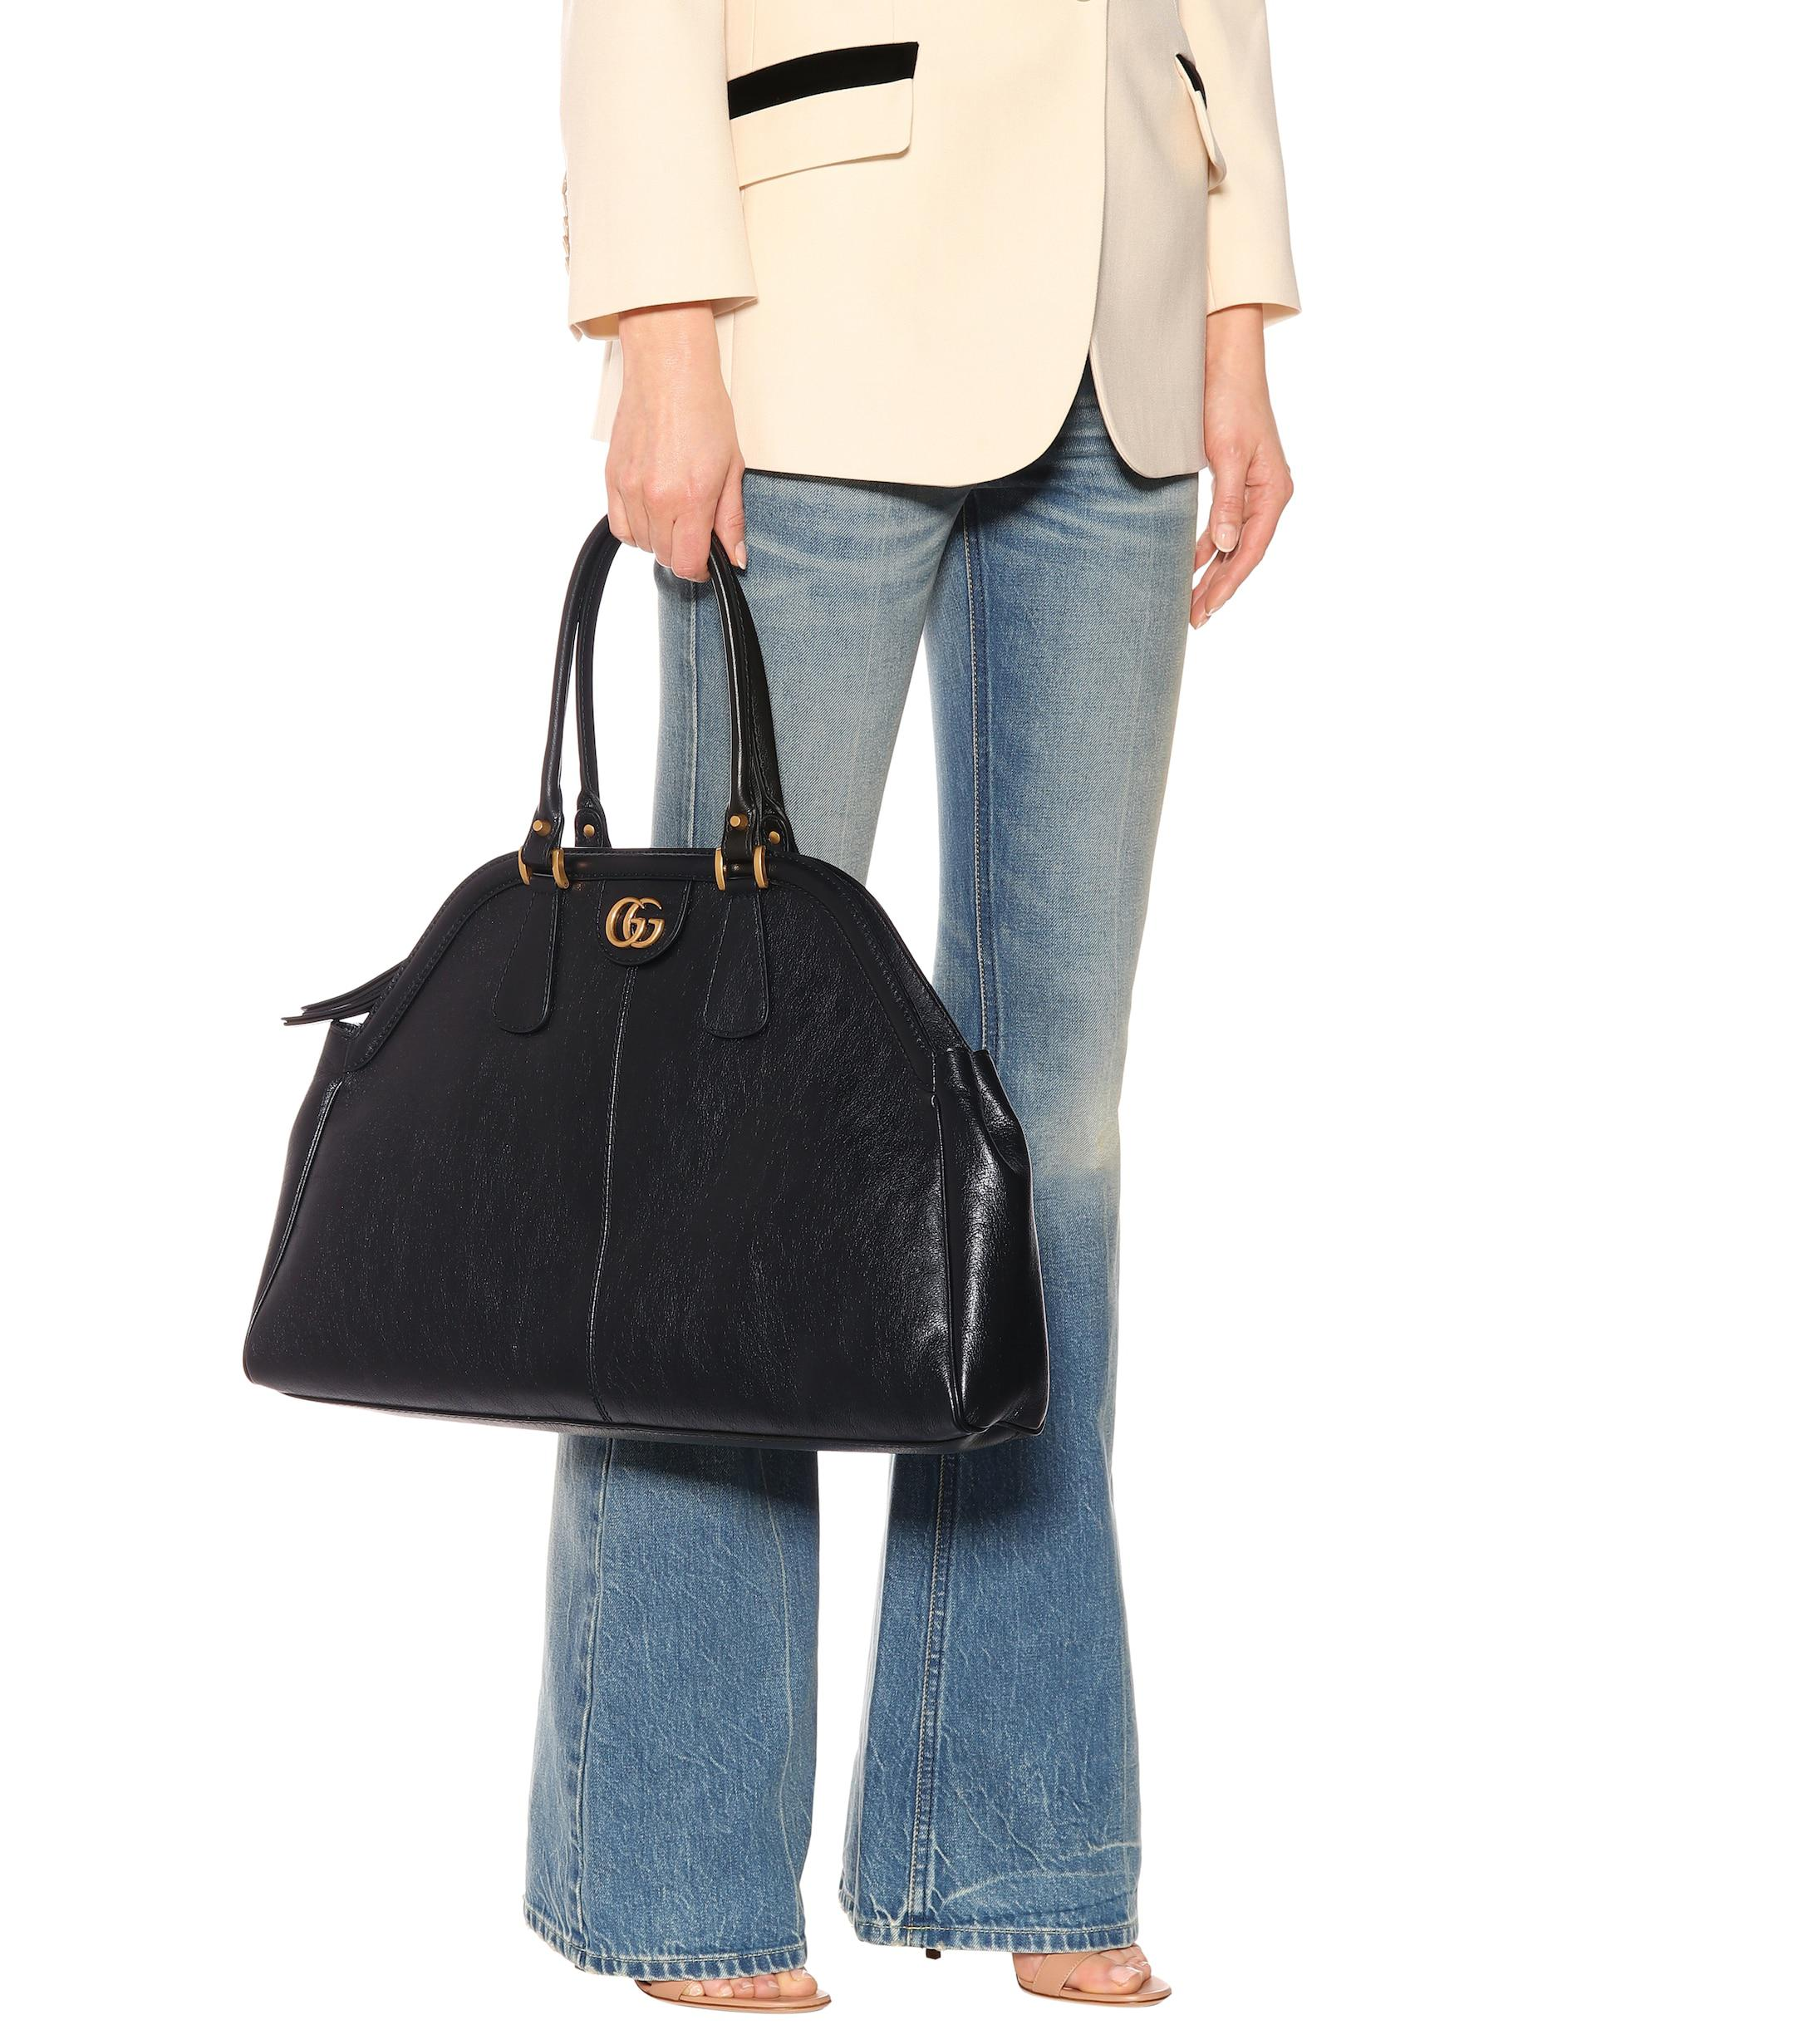 7d24fd5e5a2a Gucci Re(belle) Leather Bag in Black - Save 38% - Lyst